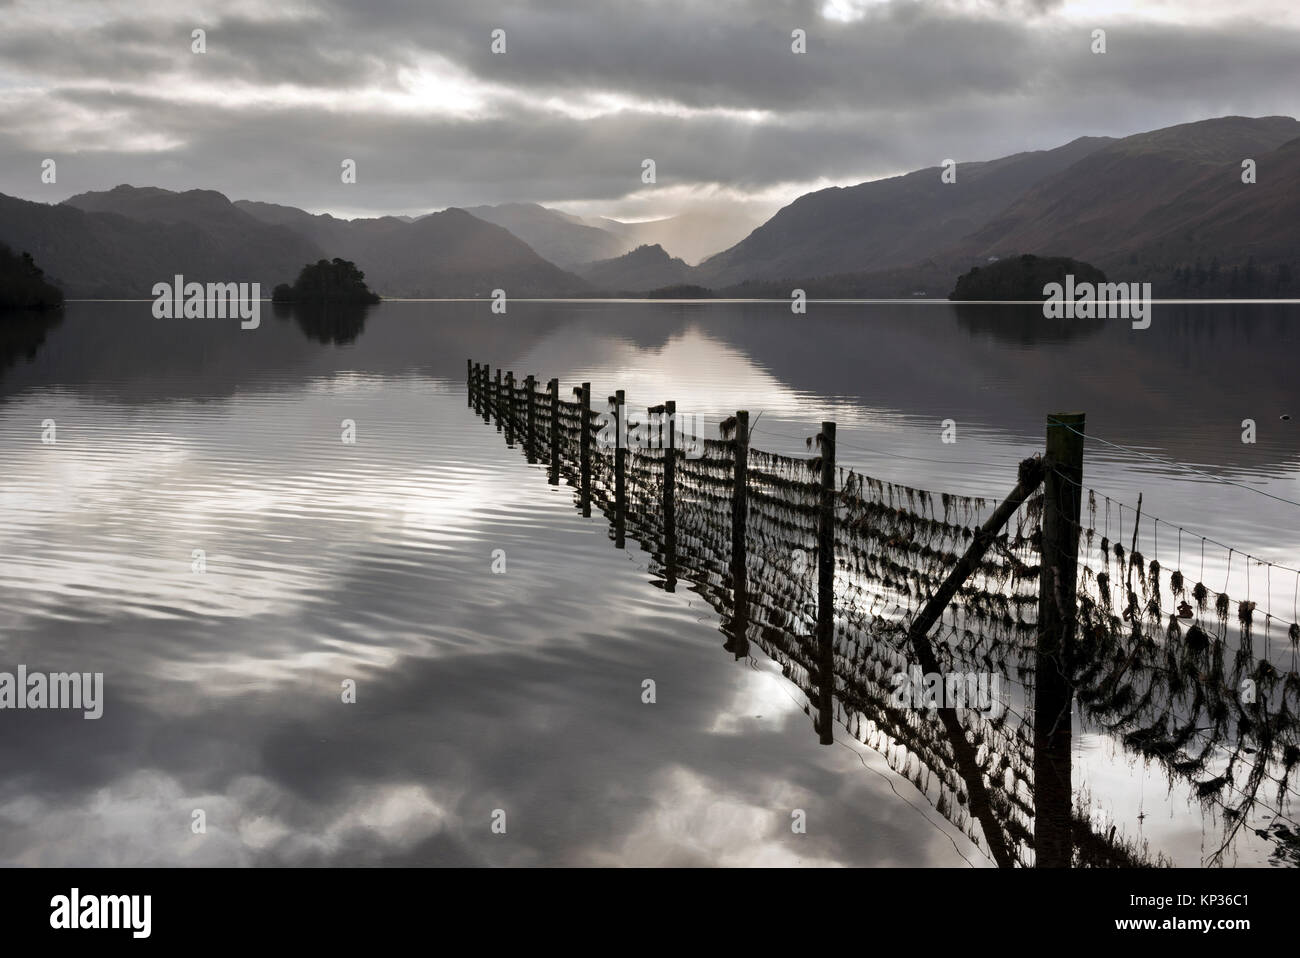 Derwent Water seen from Friar's Crag, Keswick, The Lake District. Cumbria, UK - Stock Image